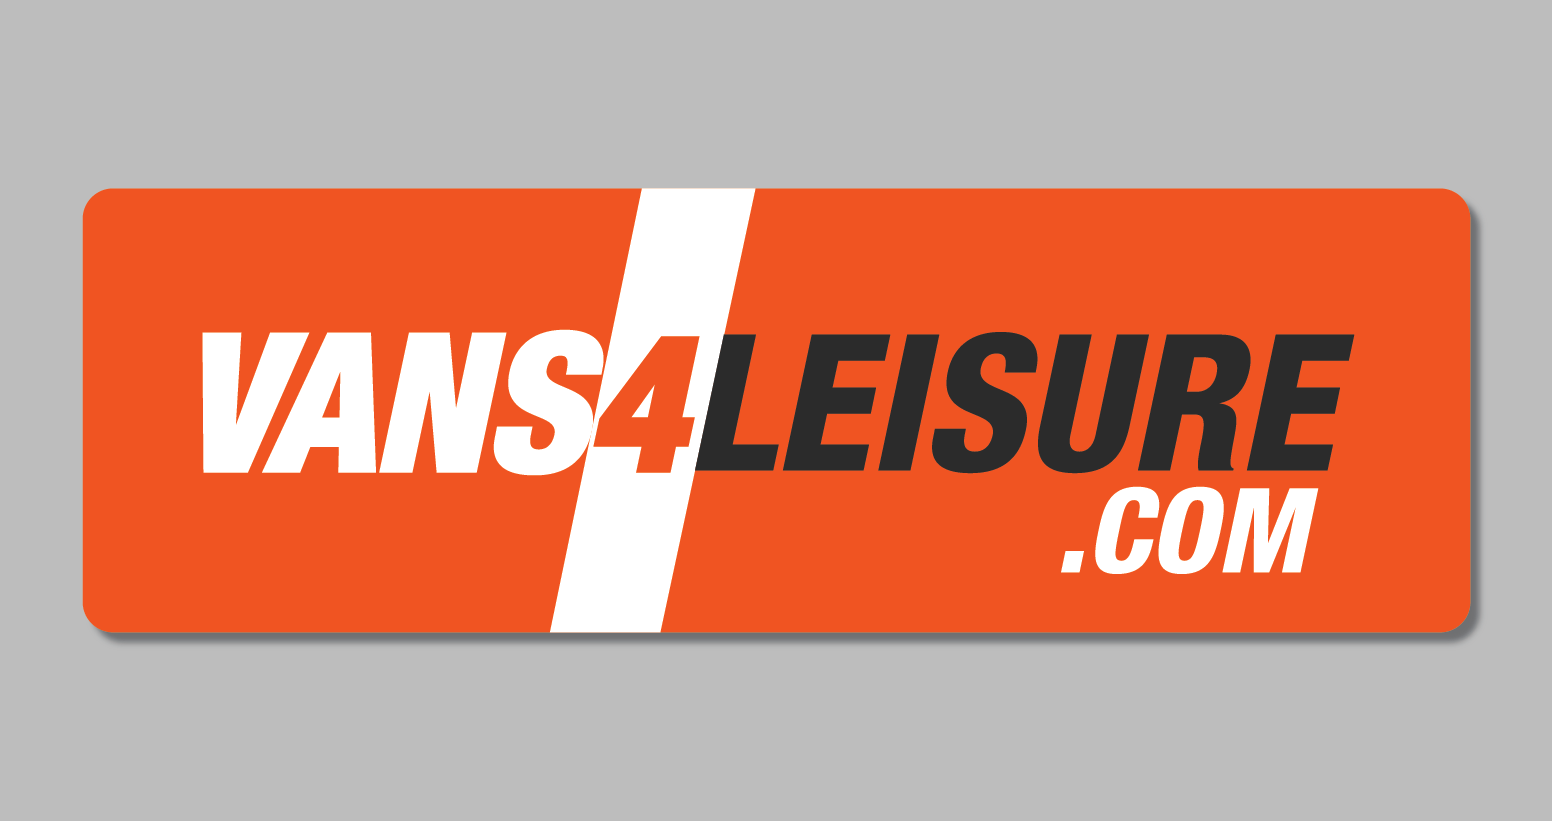 Vans4Leisure Logo